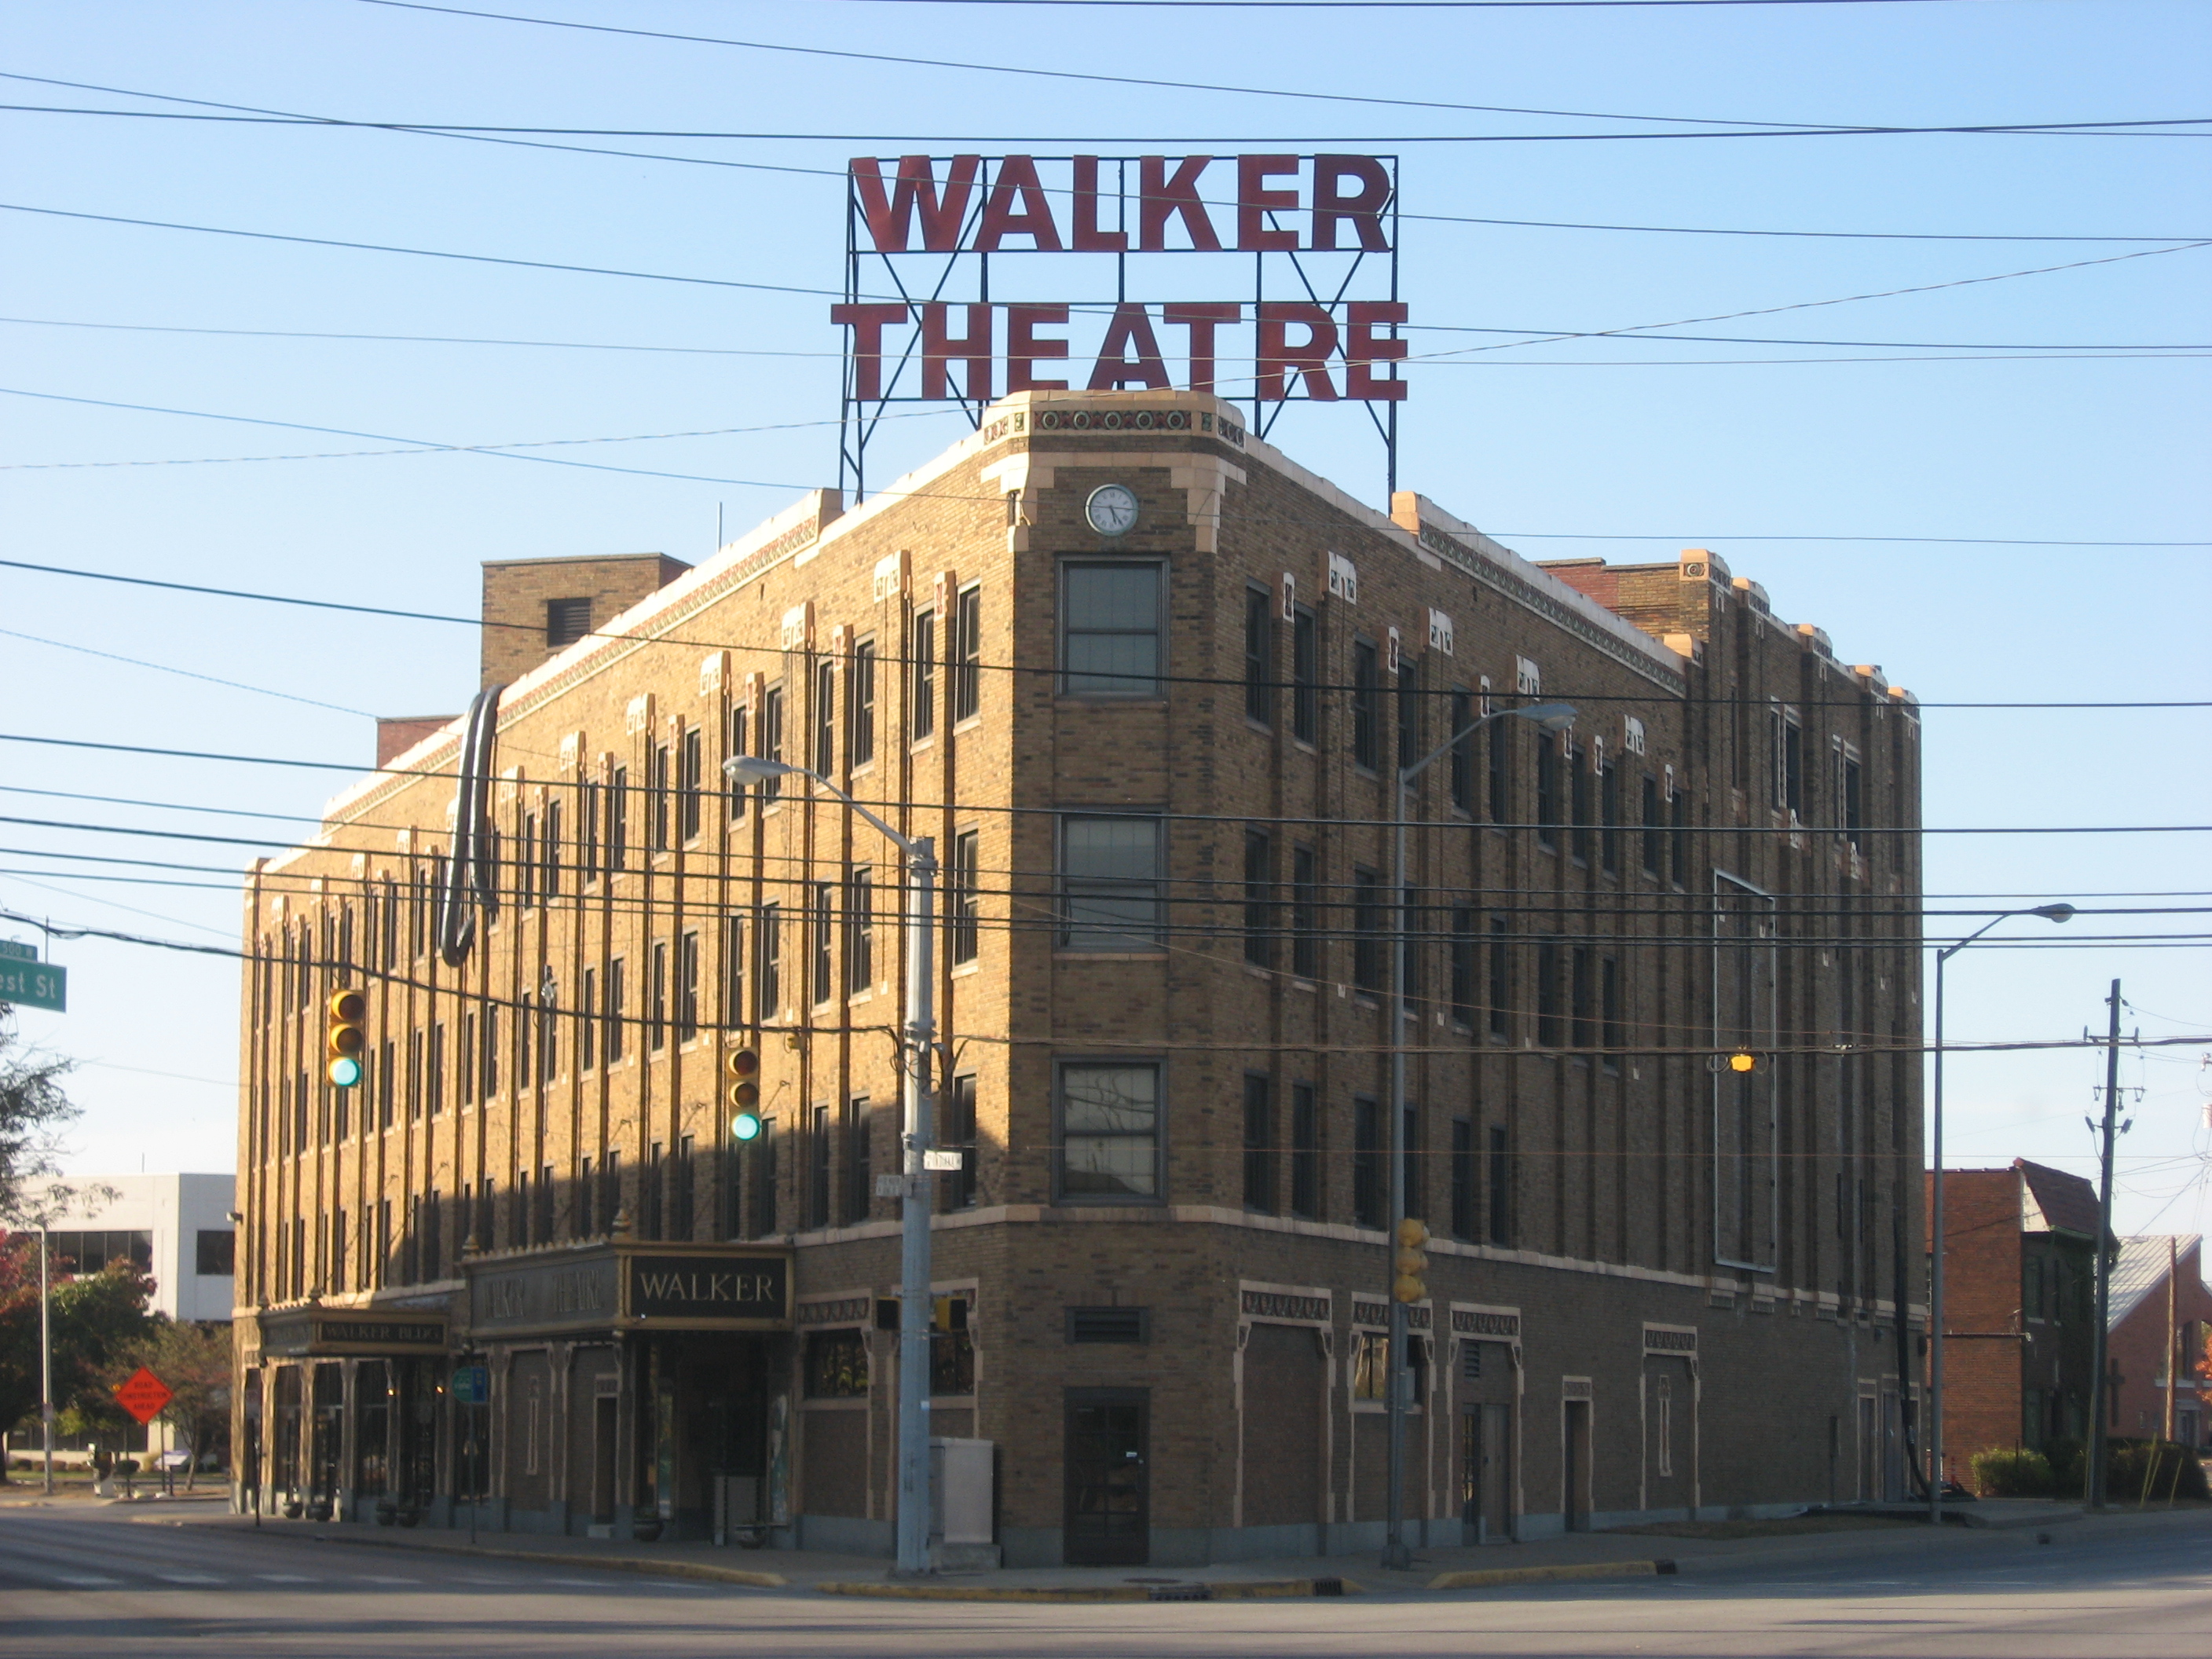 The Madame Walker Theatre Complex is now home, not only to a theatre, but also a full performing arts center.